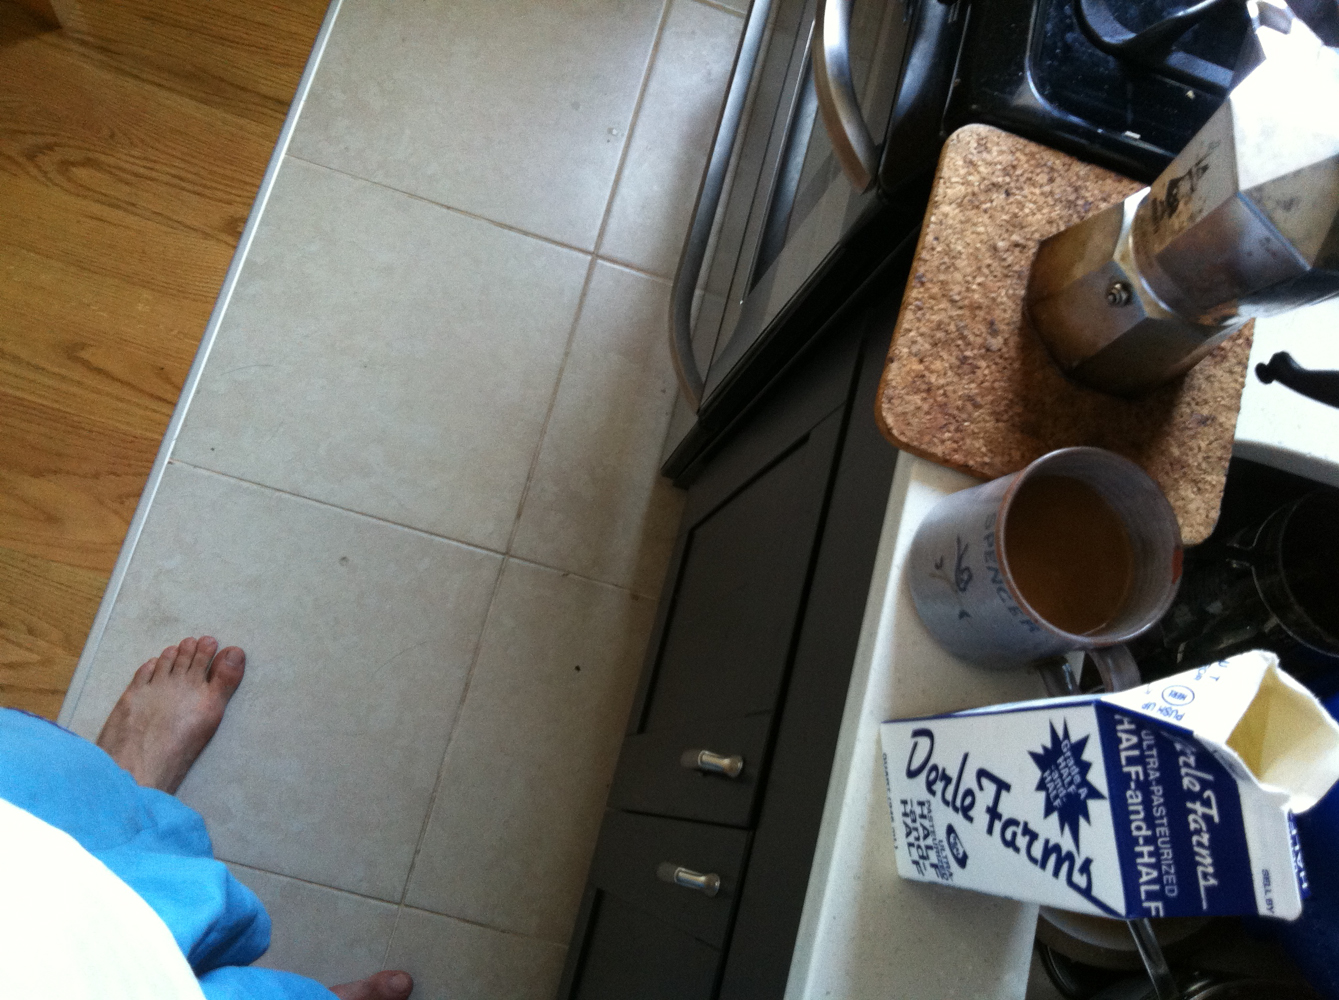 pictured: my feet, coffee, etc.  obv.